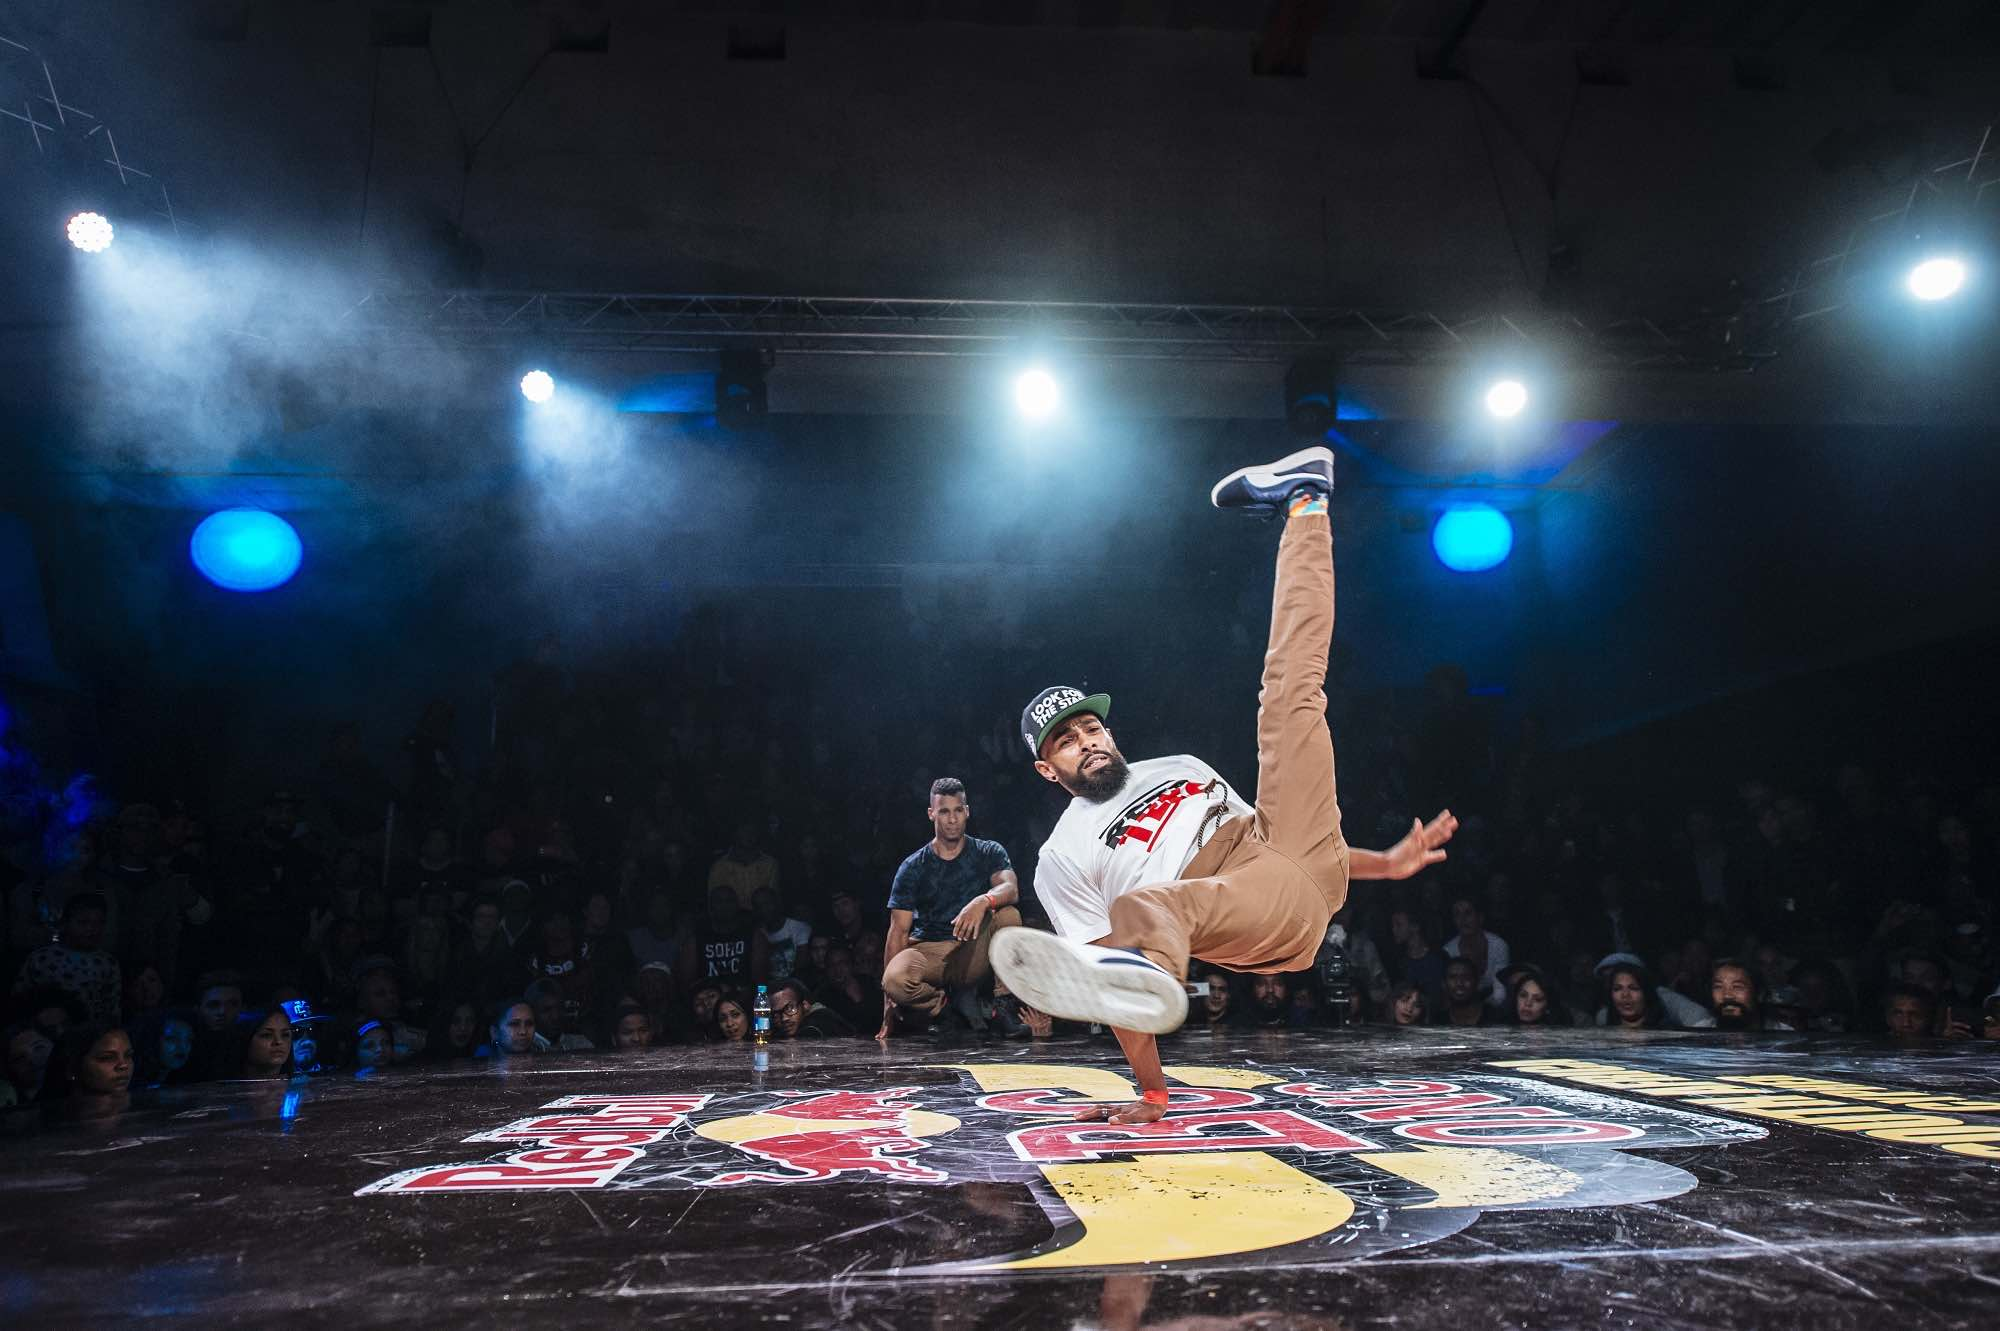 Internationally Renowned Breakdance Competition, Red Bull BC One, Returns to South Africa in 2017